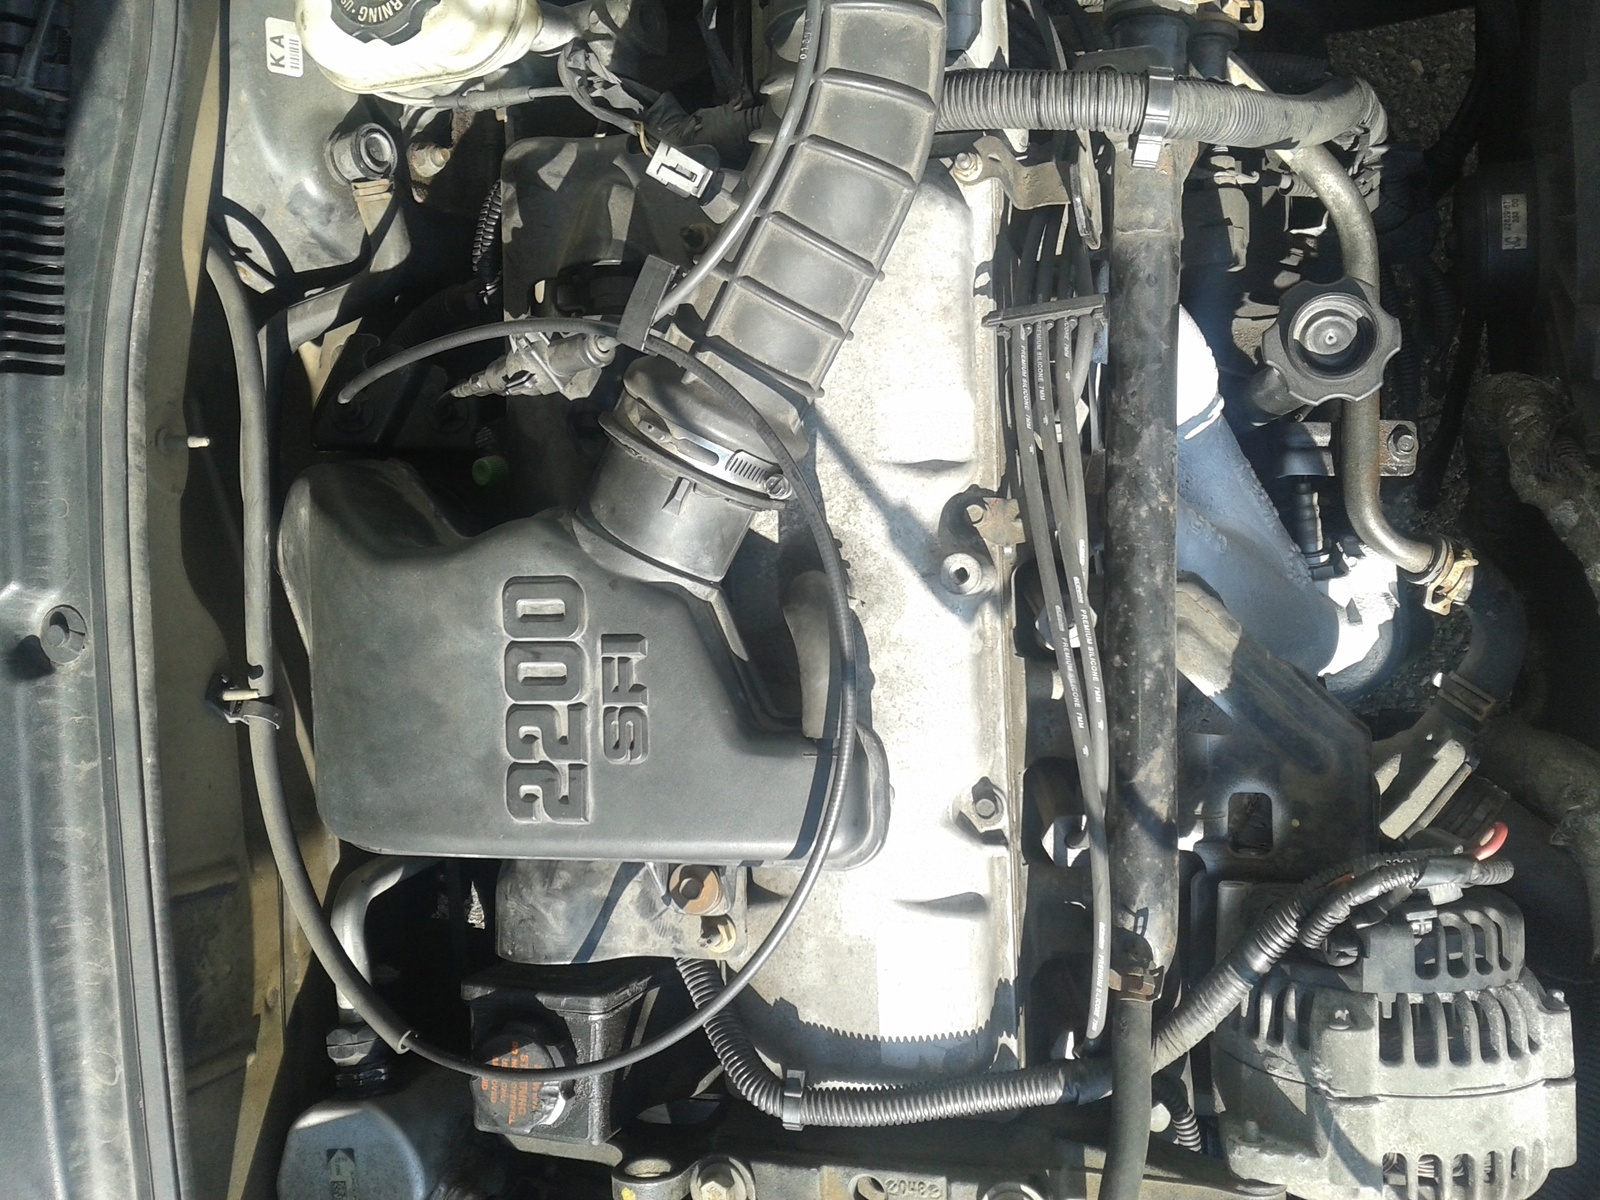 1997 chevy s10 2.2 head gasket replacement